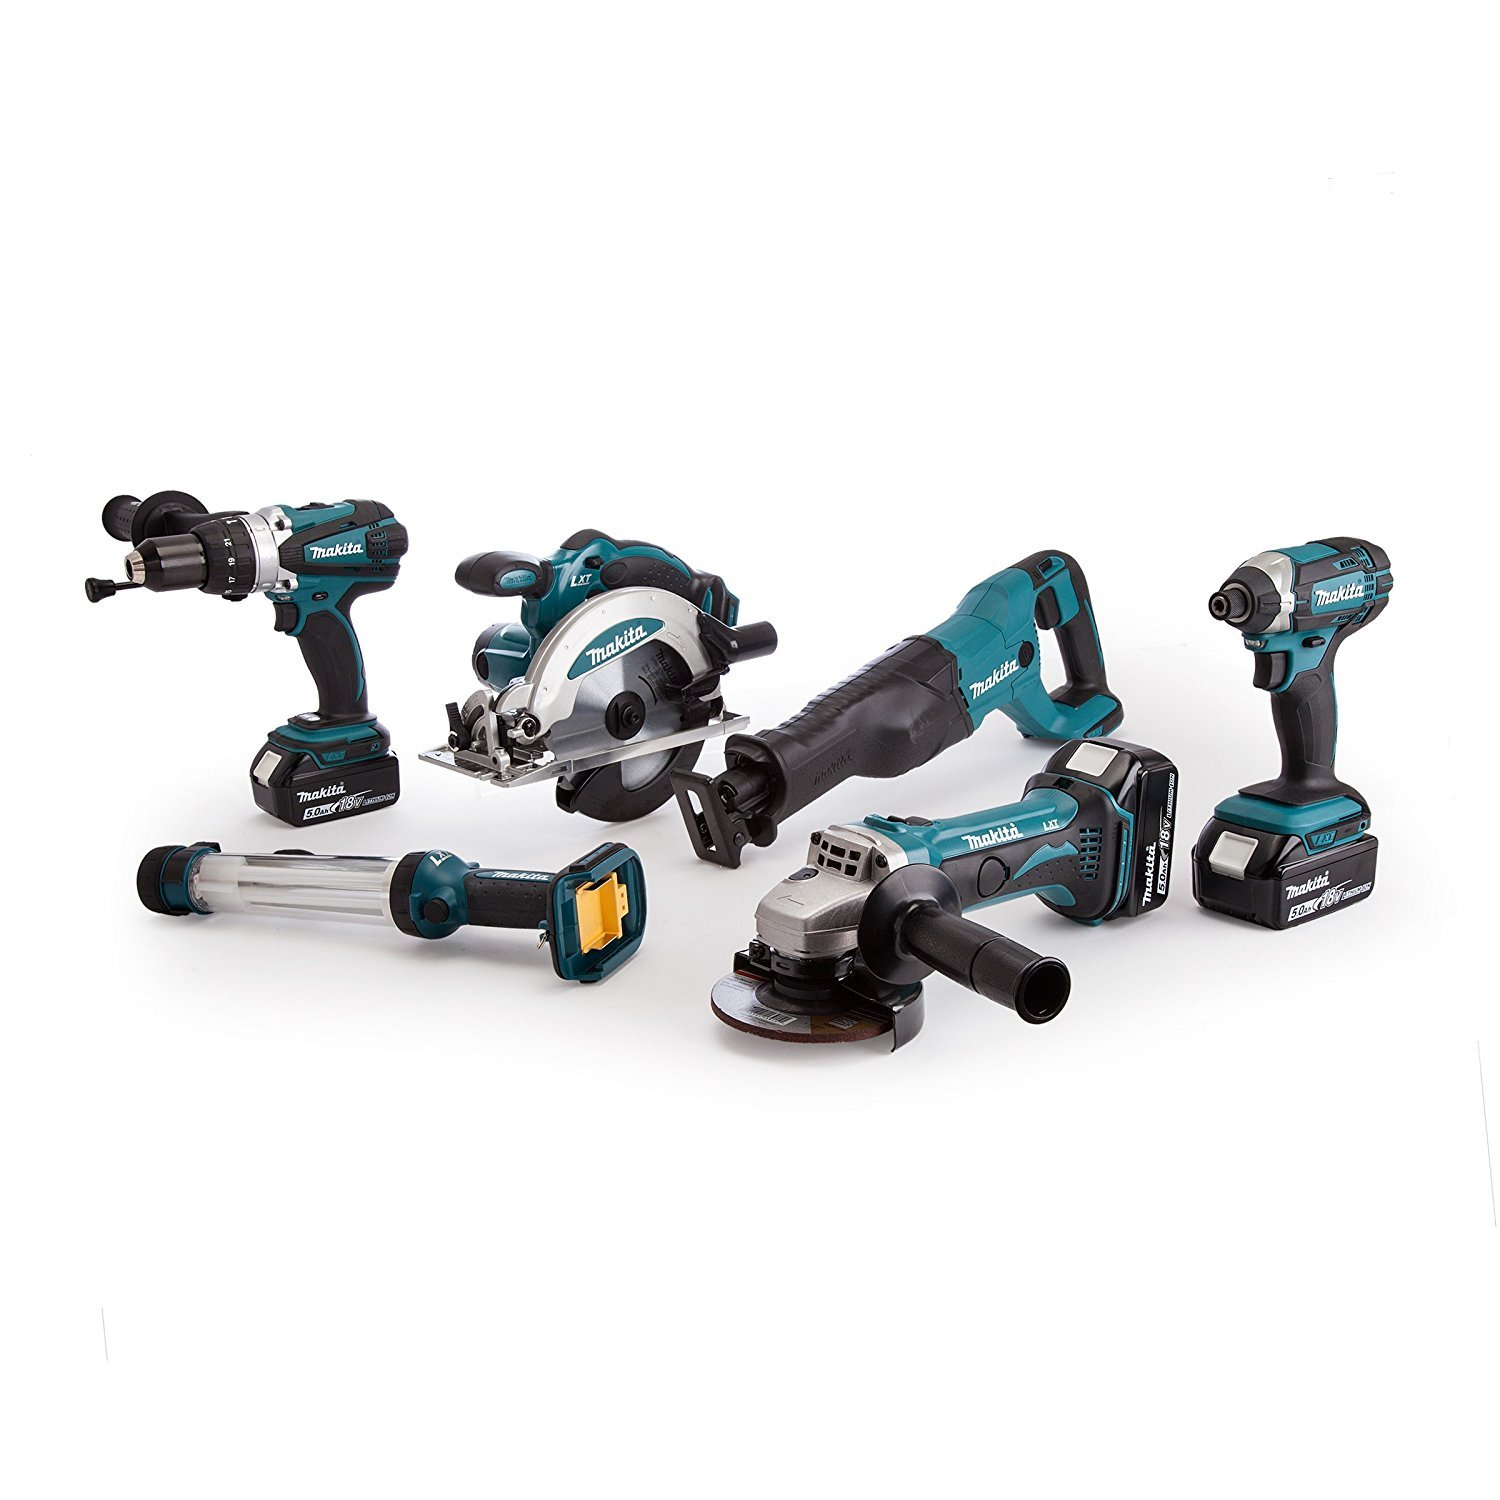 Makita Set DLX6044PT